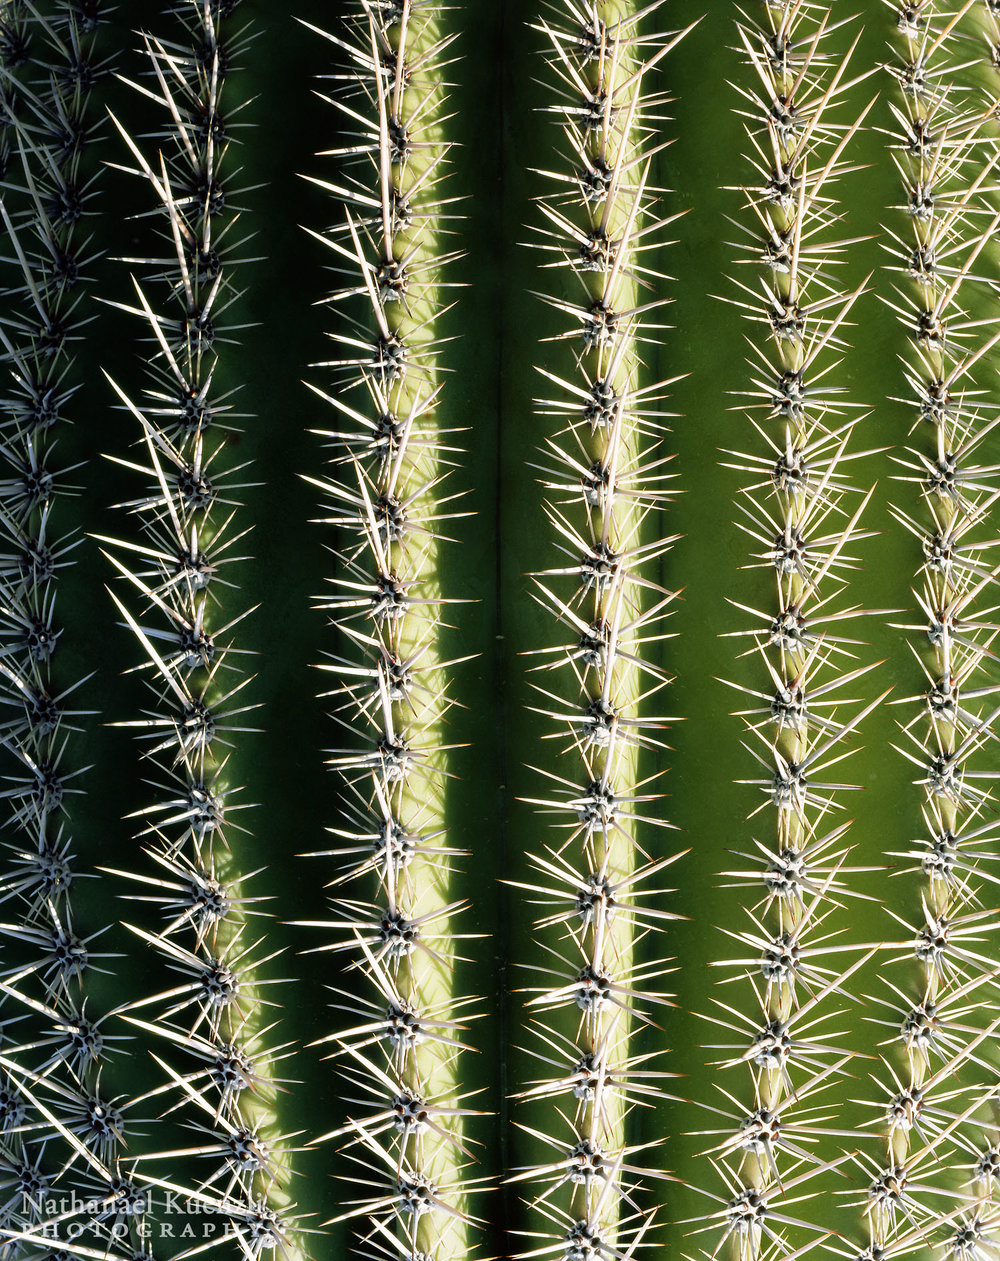 Saguaro Detail, Saguaro National Park, Arizona, March 2008